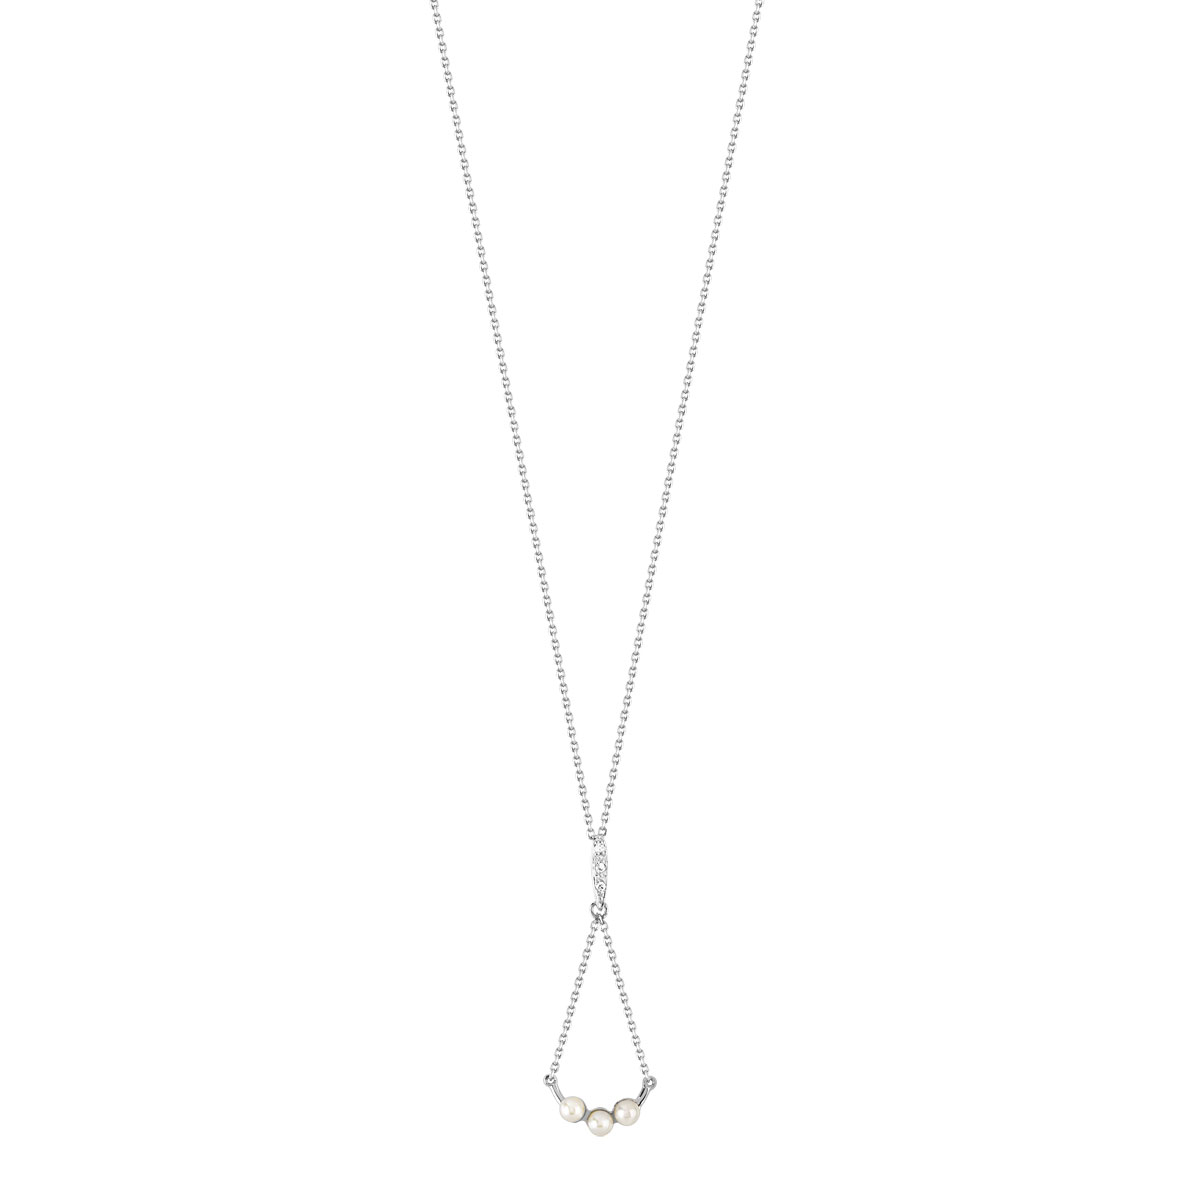 Collier or 375 blanc perle de culture et diamant - vue V1